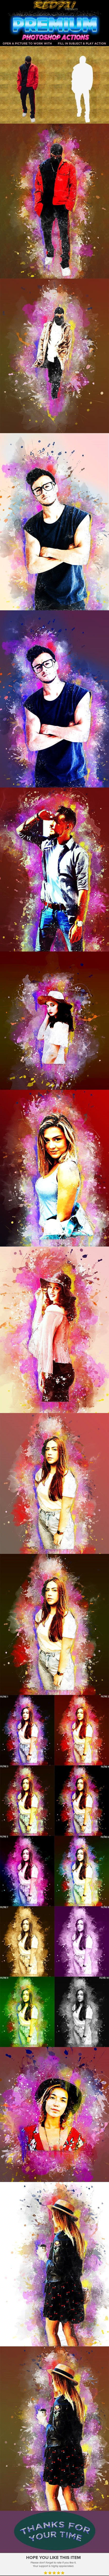 Watercolor Splatter Effect Photoshop For 6 Envato Market